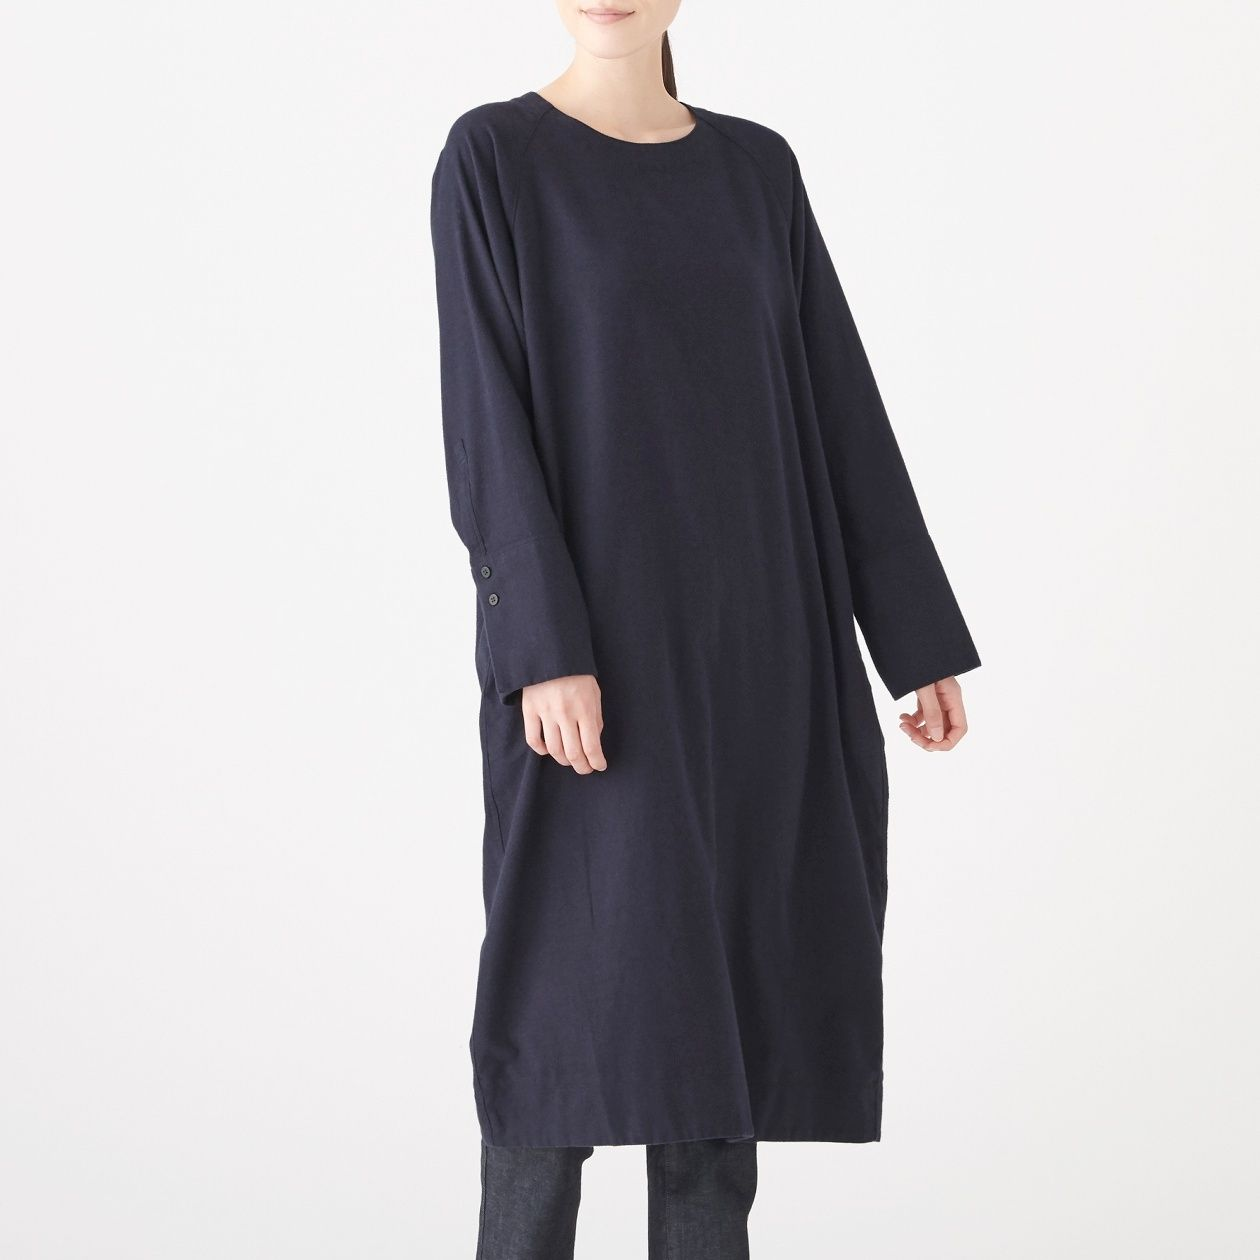 XINJIANG COTTON FLANNEL PULLOVER DRESS